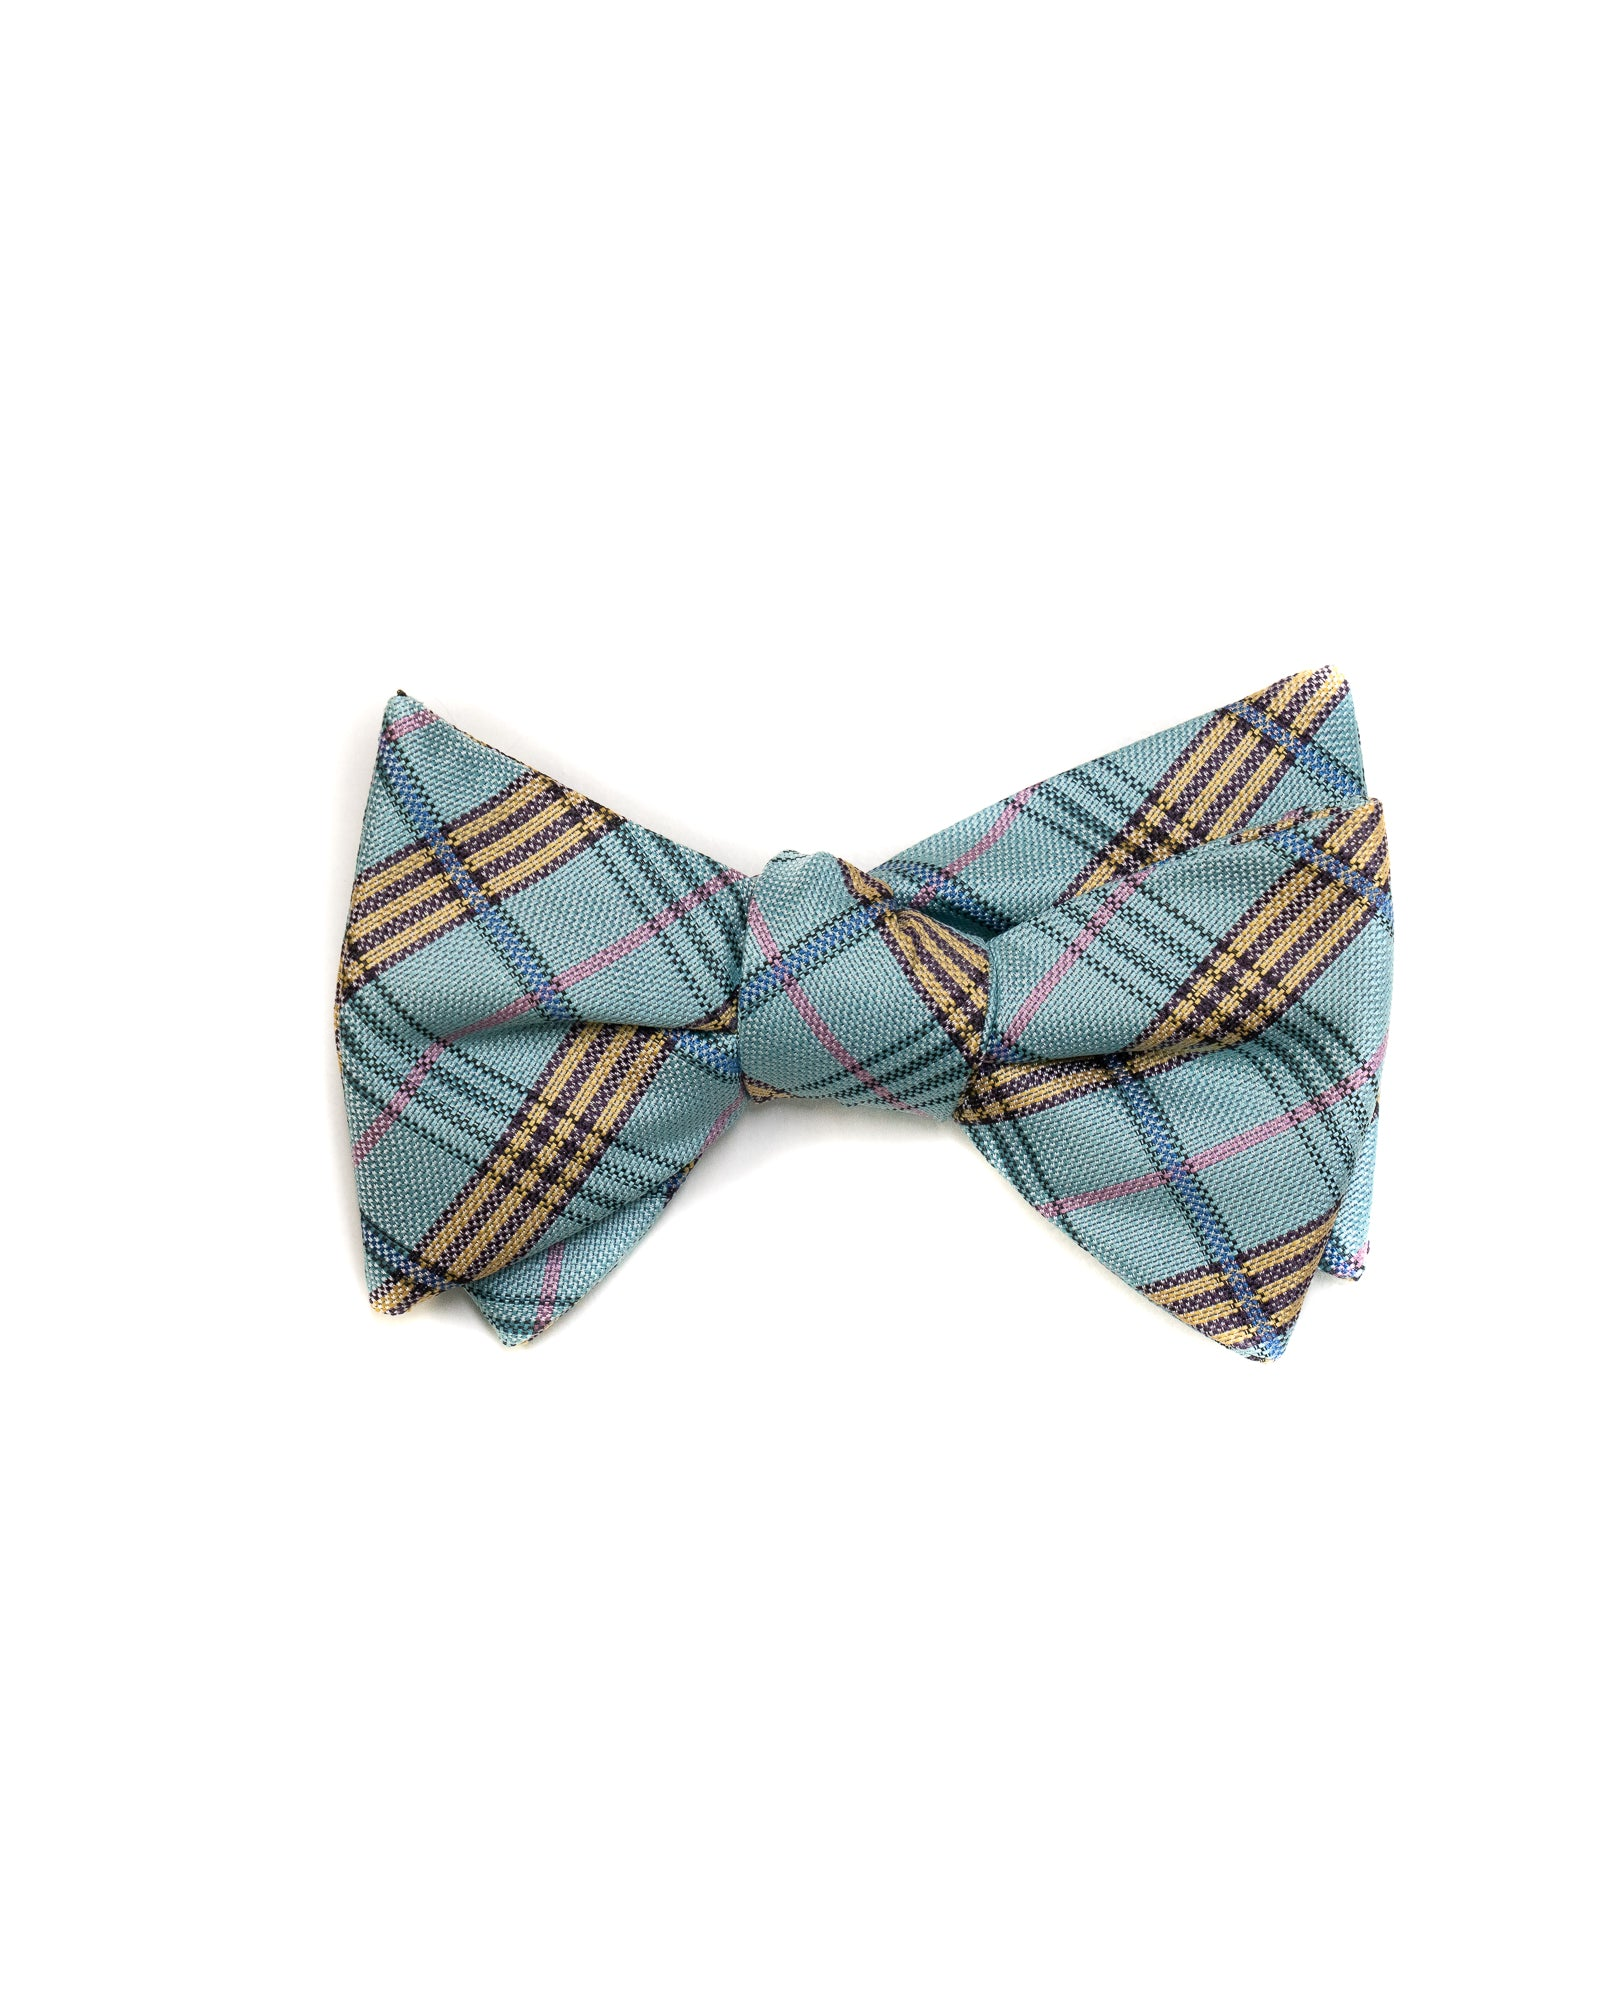 Self Tie Bow Tie In Mint Green Plaid - Rainwater's Men's Clothing and Tuxedo Rental